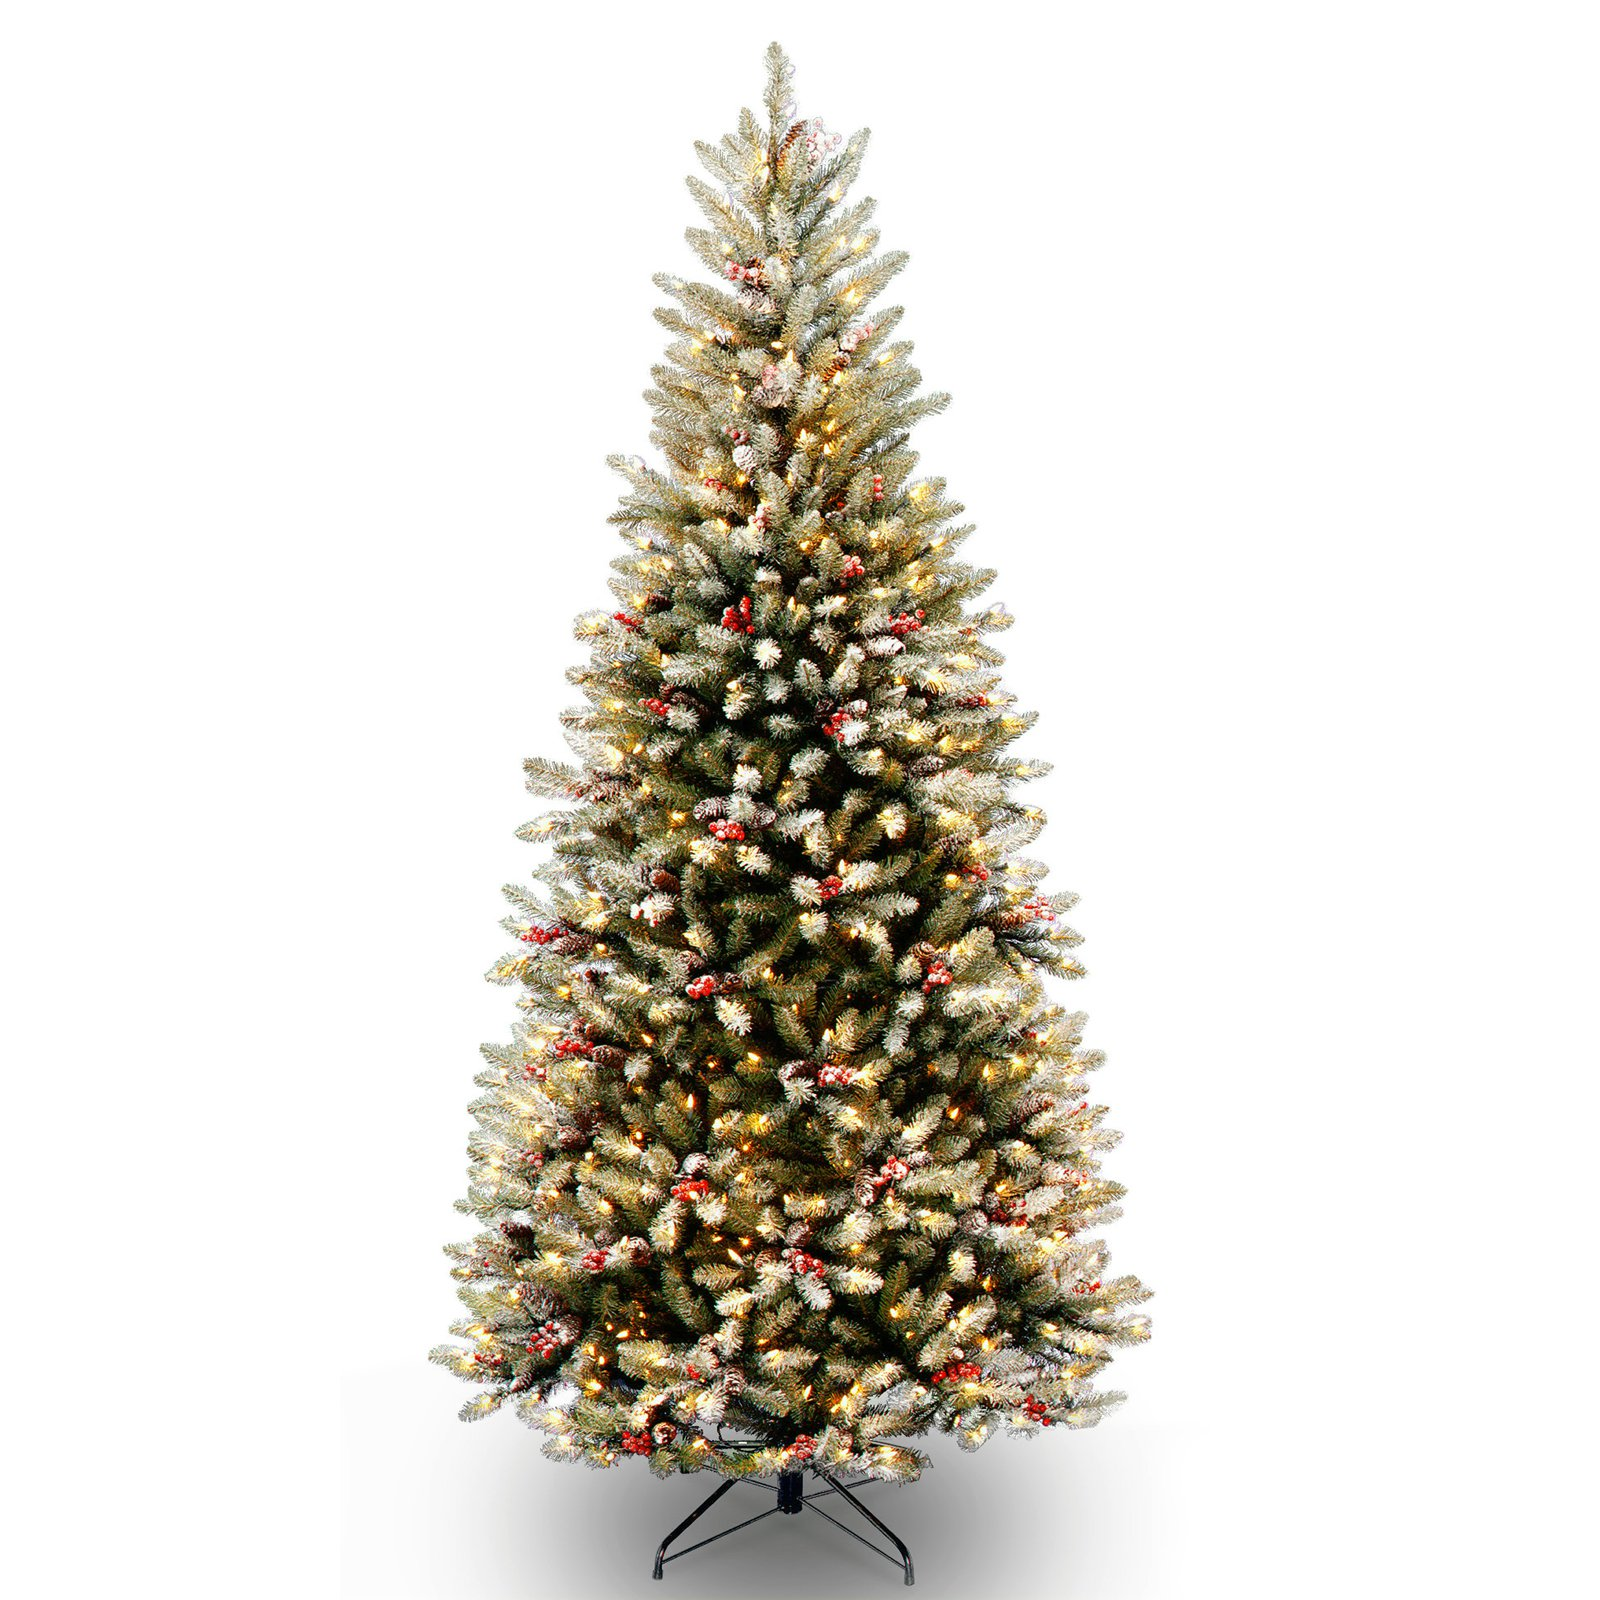 National Tree Pre-Lit 7-1/2' Dunhill Fir Slim Hinged Artificial Christmas Tree with Snow, Red Berries, Cones and 600 Clear Lights